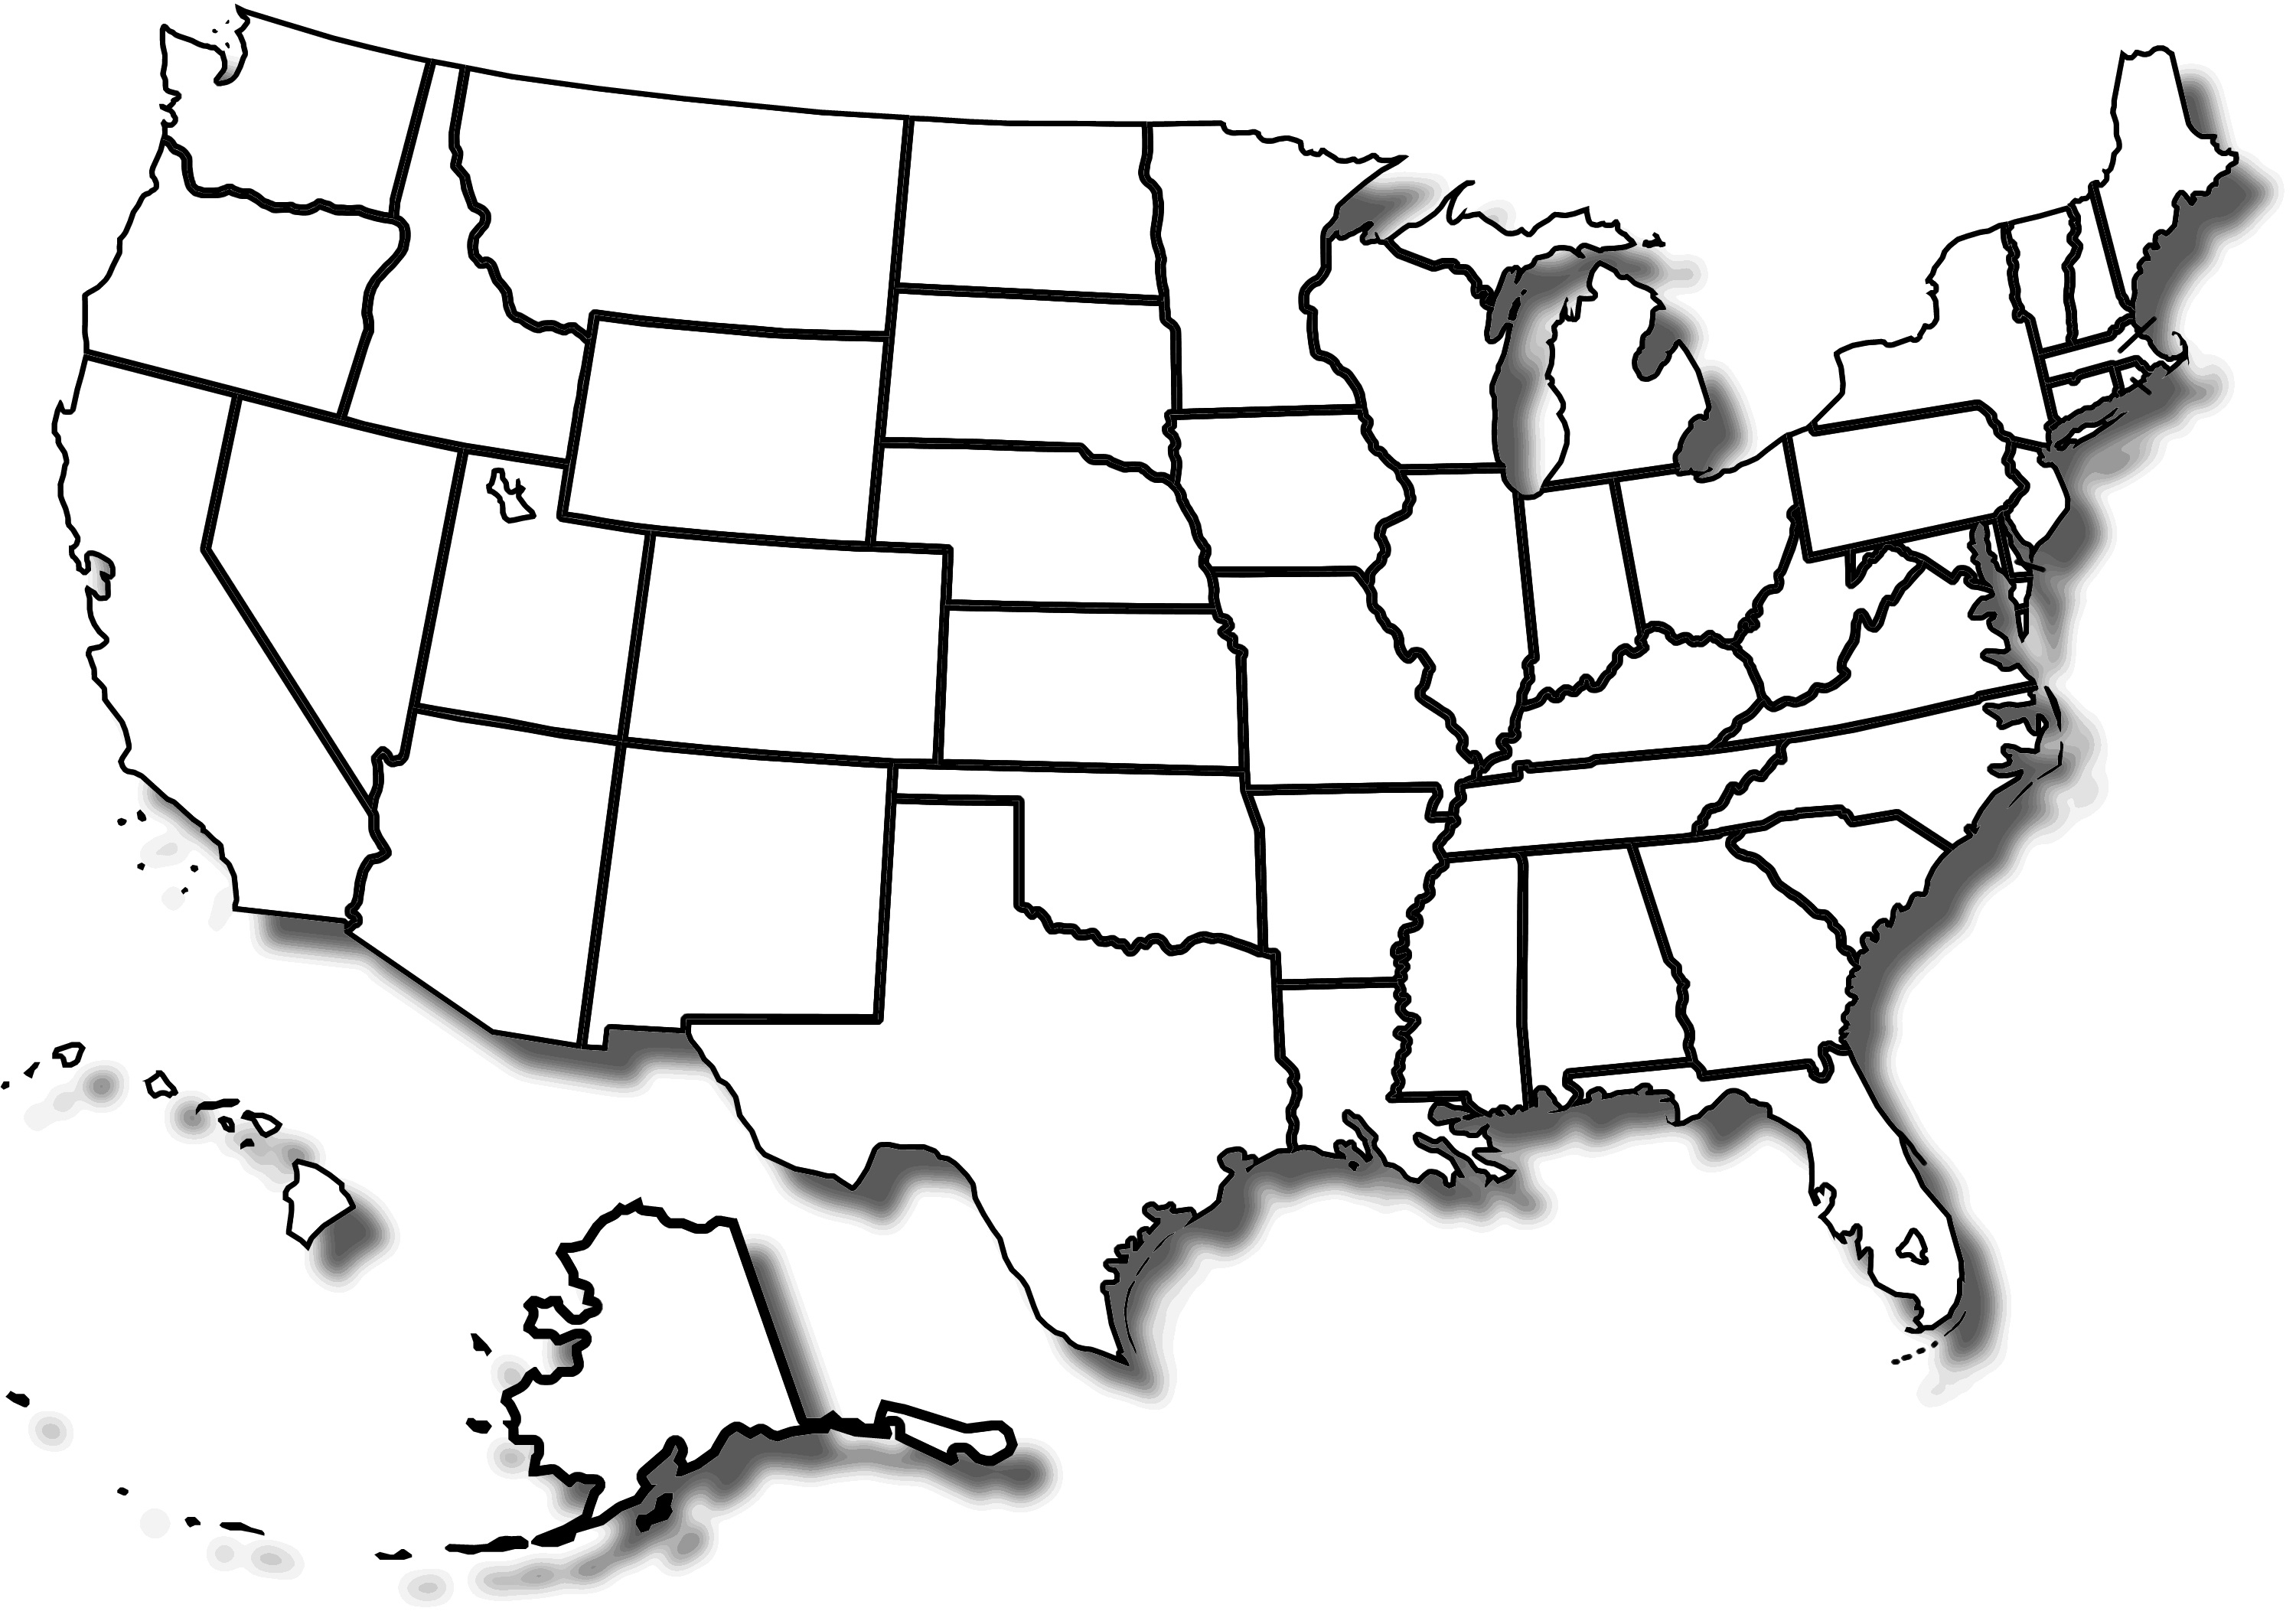 3000x2118 Drawing Of Usa Map Hilariously Bad Attemptsamericans To Draw